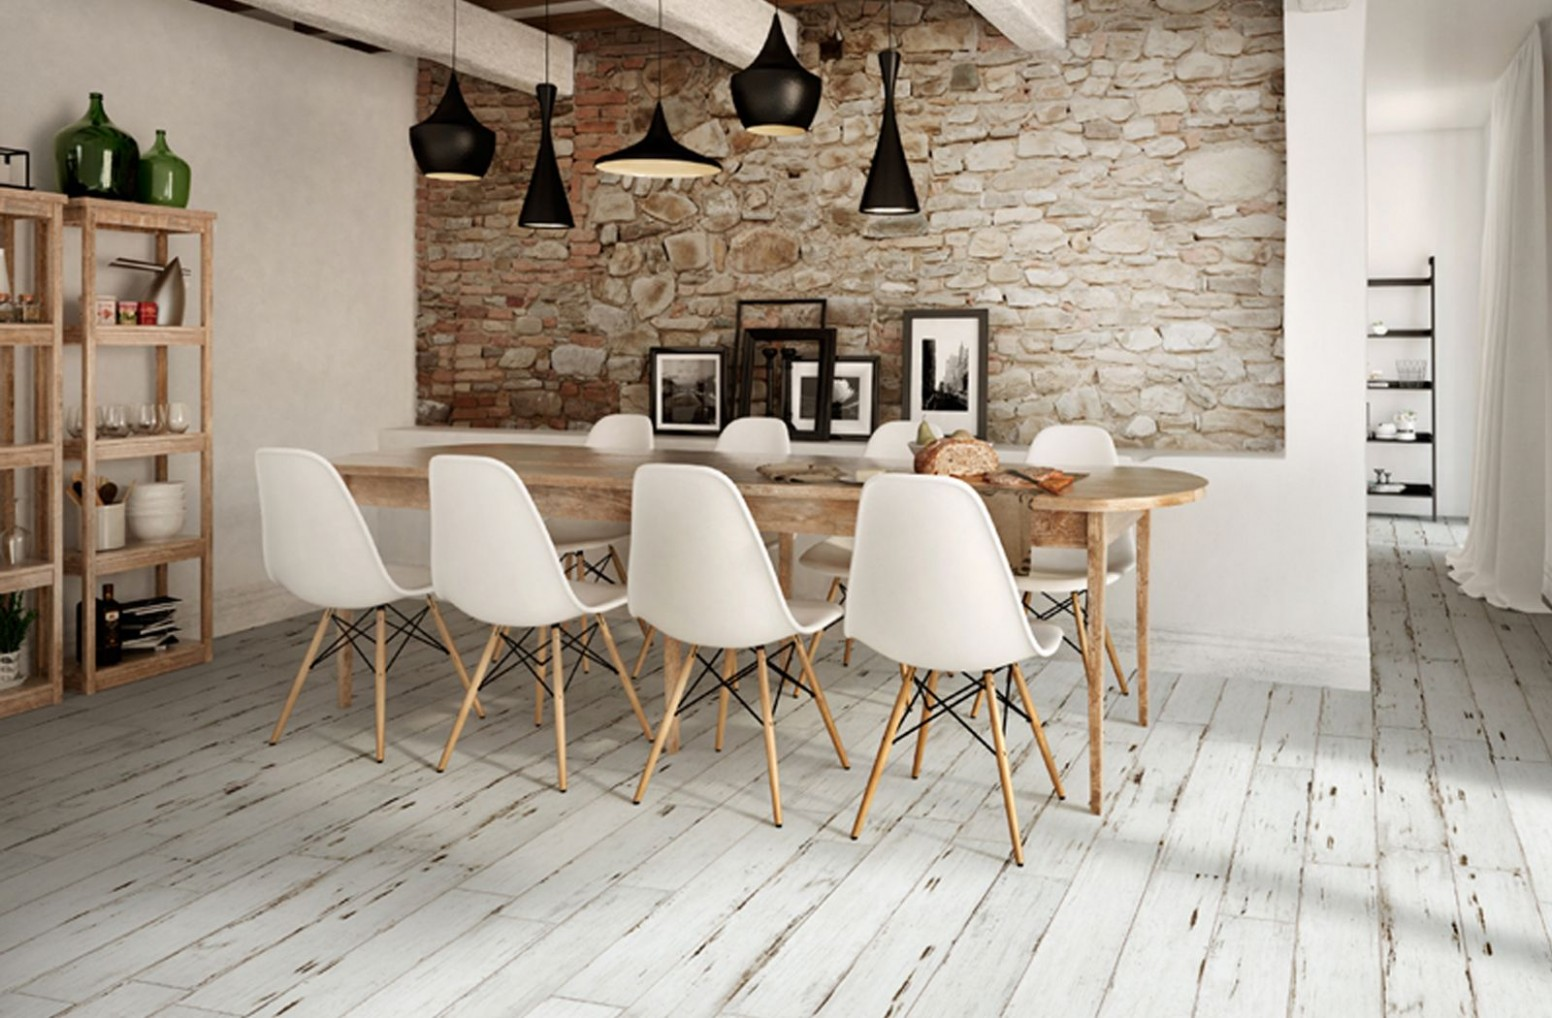 Modern country rustic vibe at dining space with Painted floor  - Dining Room Tile Ideas